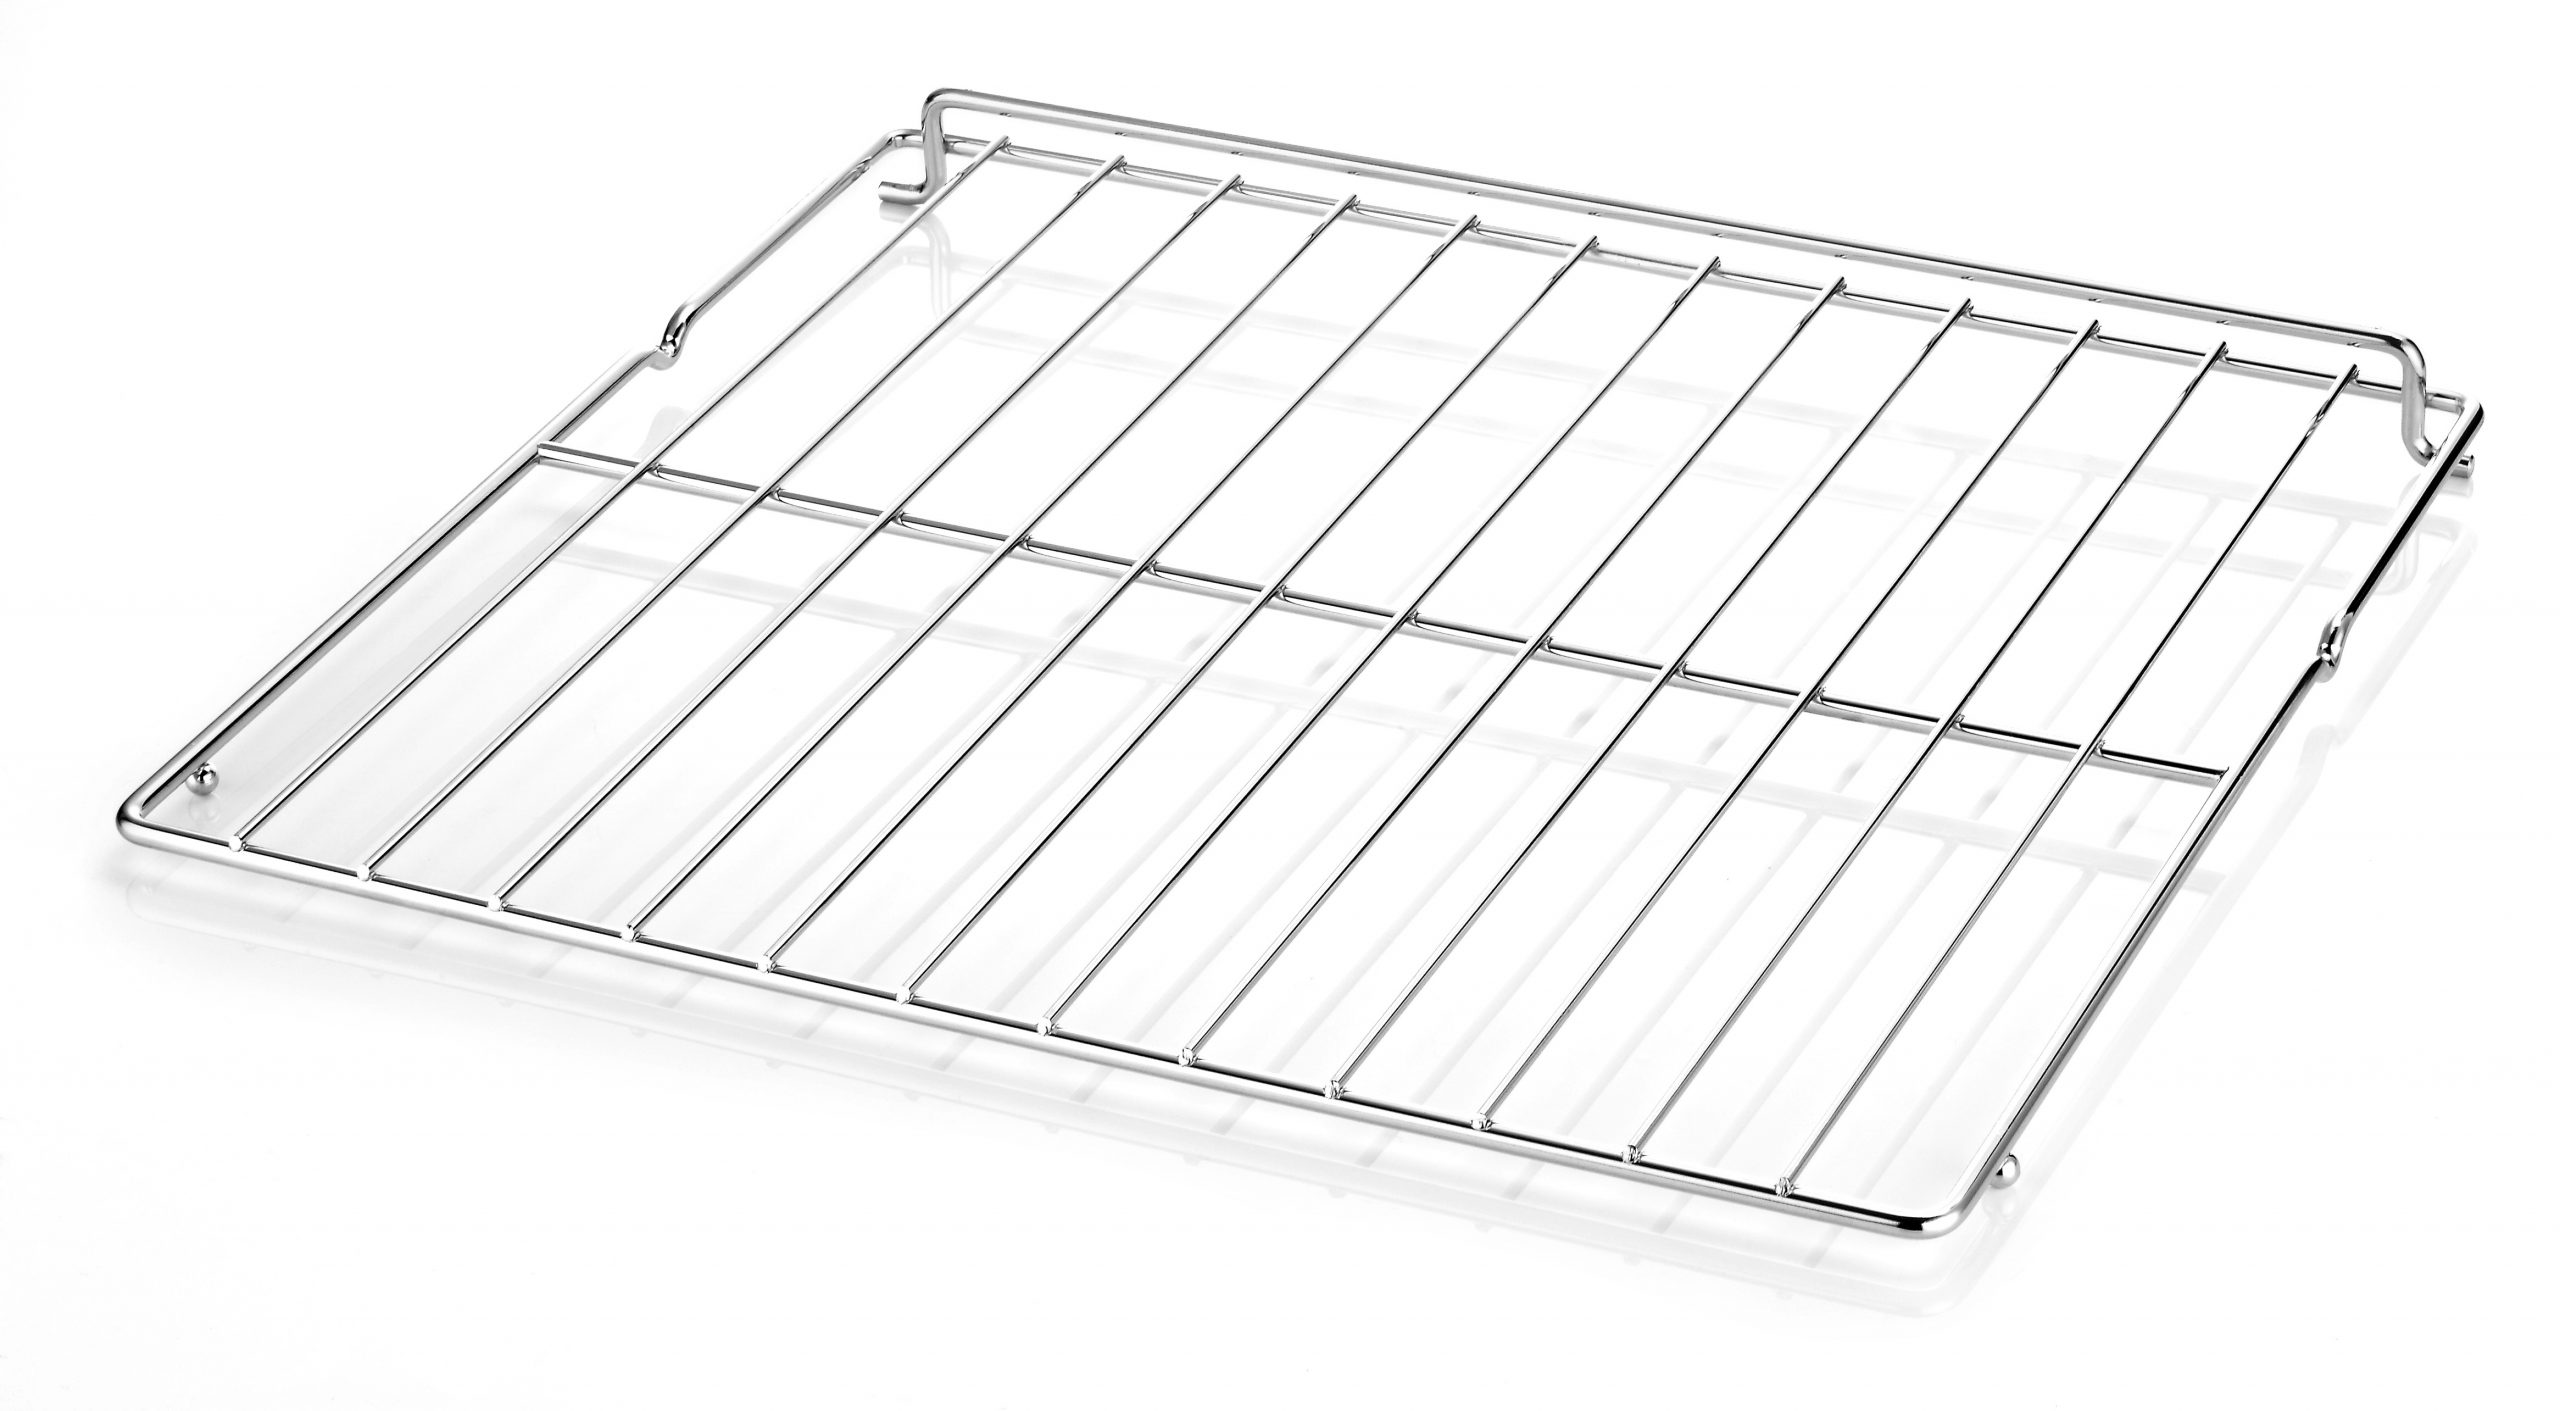 Chrome Plated Steel Oven Rack